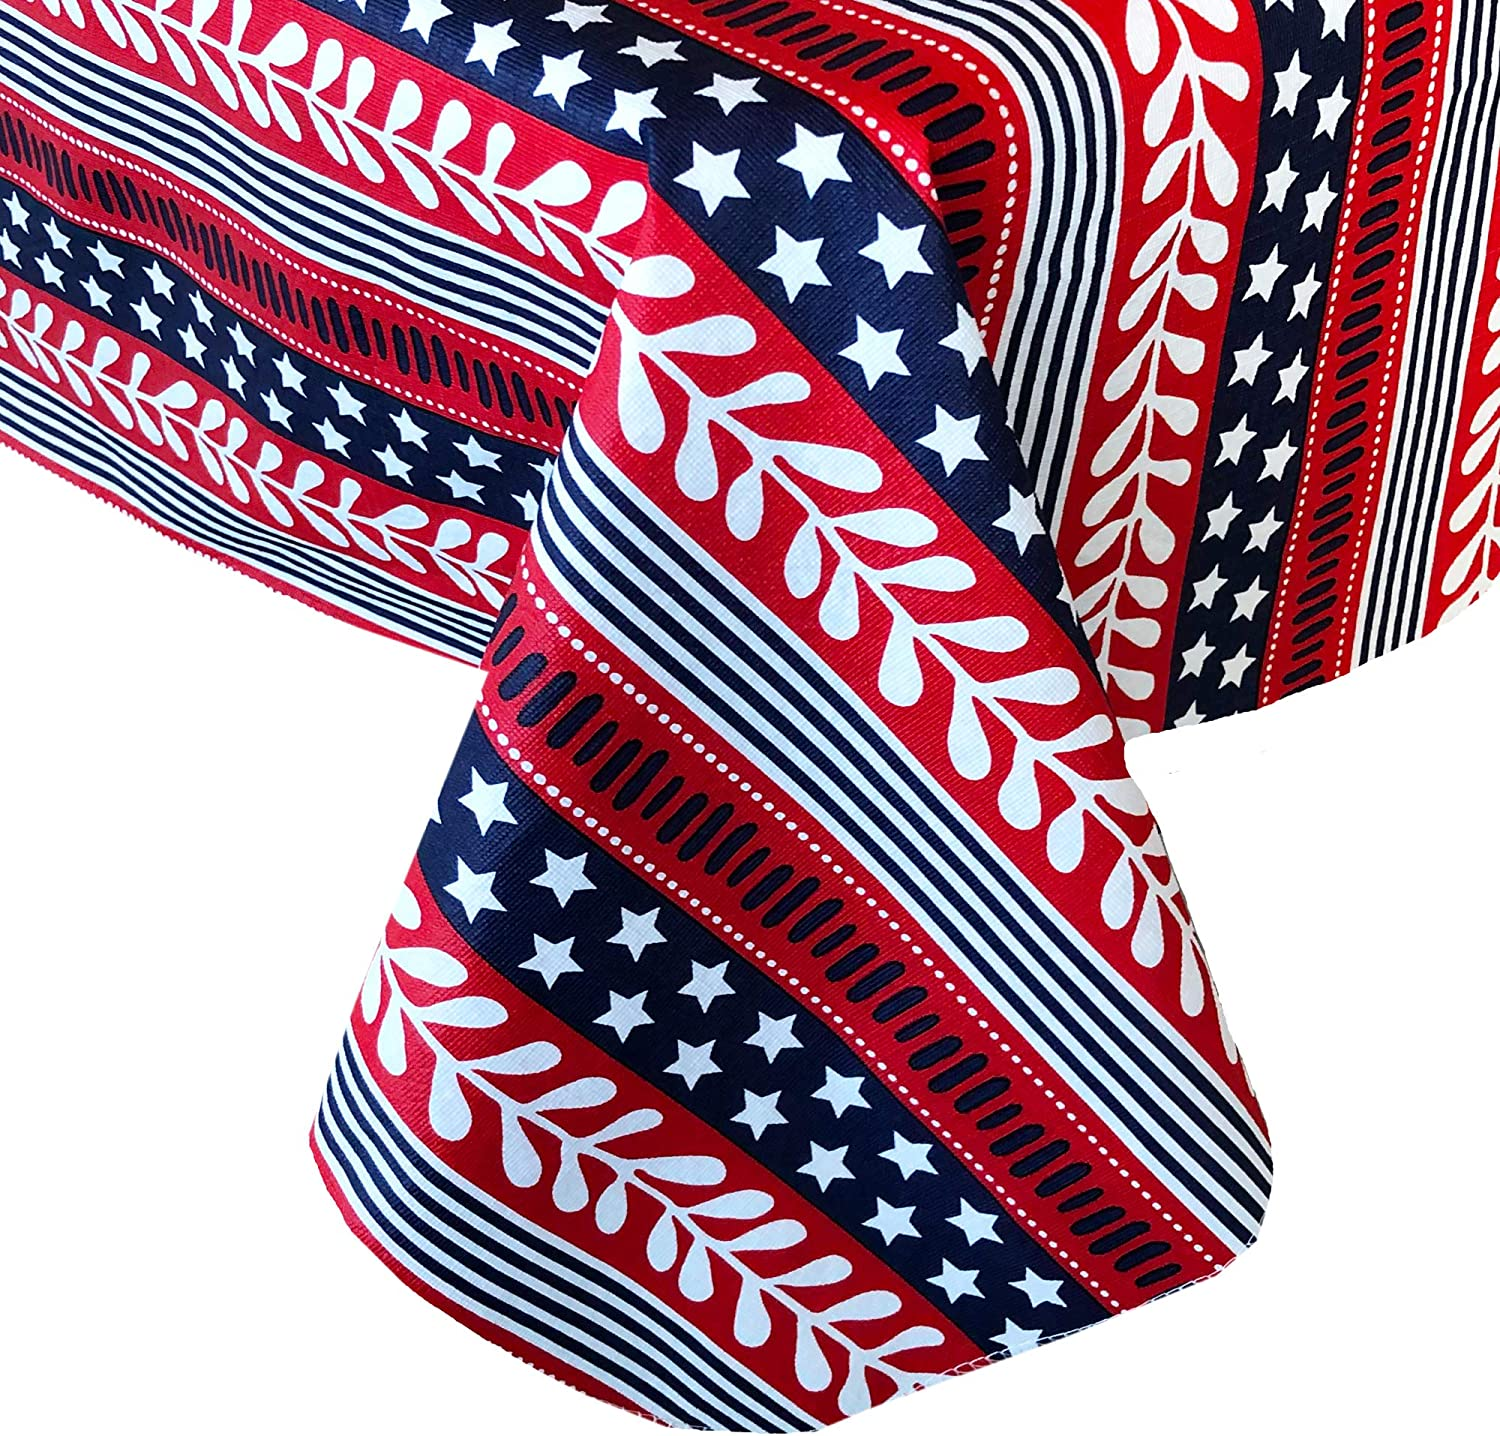 Home Bargains Plus Americana Stars and Stripes Print Vinyl Flannel Backed Tablecloth - Red, White and Blue Patriotic Indoor/Outdoor Tablecloth for Patio and Kitchen Dining - 60 Round